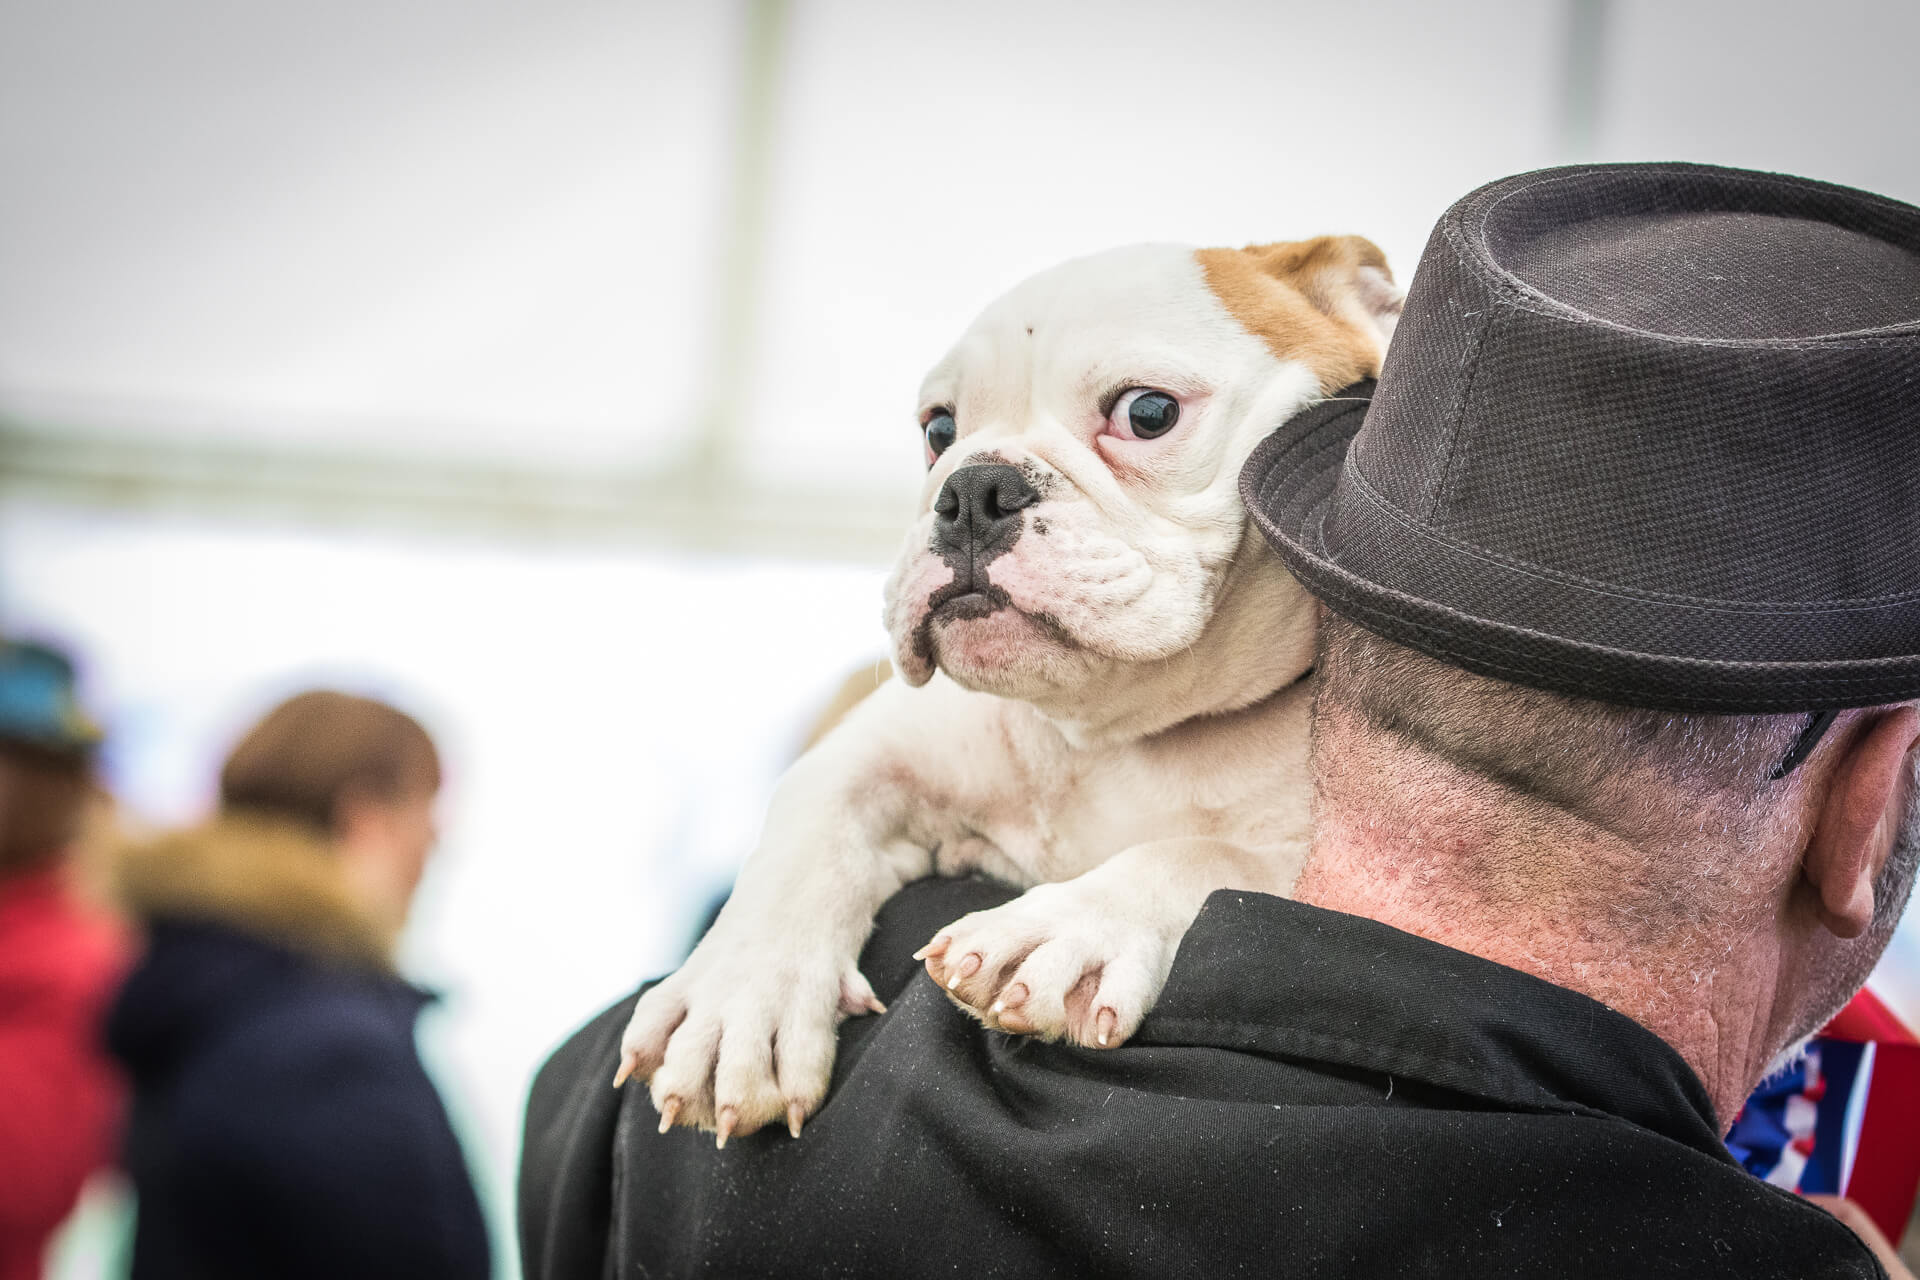 A small Bulldog stares at the camera as he is carried on his owners shoulder. He is white in colour, and sports a light brown ear.